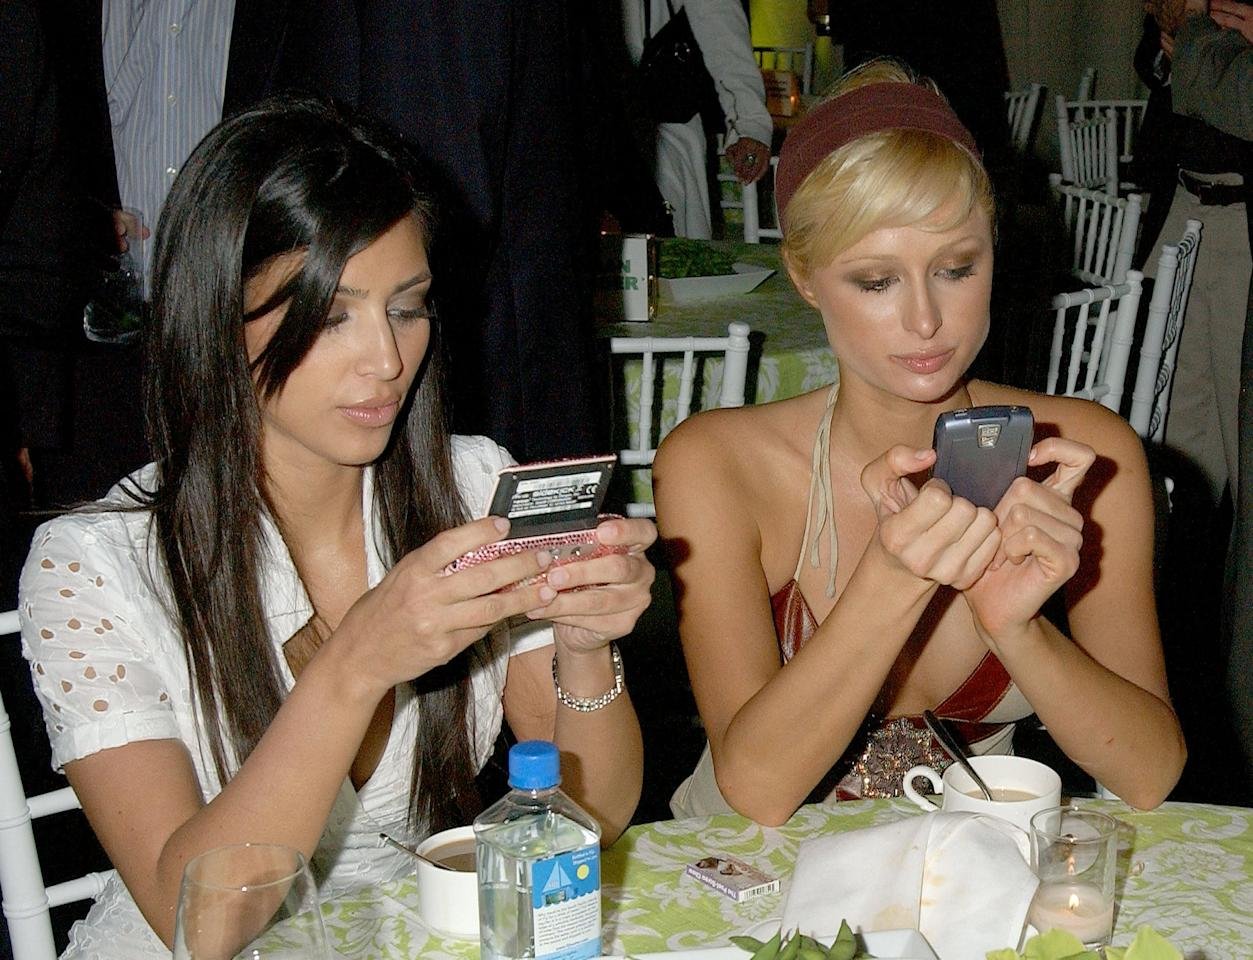 """<p>Kim and her BFF <a class=""""sugar-inline-link ga-track"""" title=""""Latest photos and news for Paris Hilton"""" href=""""https://www.popsugar.com/Paris-Hilton"""" target=""""_blank"""" data-ga-category=""""Related"""" data-ga-label=""""https://www.popsugar.com/Paris-Hilton"""" data-ga-action=""""&lt;-related-&gt; Links"""">Paris Hilton</a> were all texts, no talk at the LA premiere of <strong>Entourage</strong> in June 2006. </p>"""